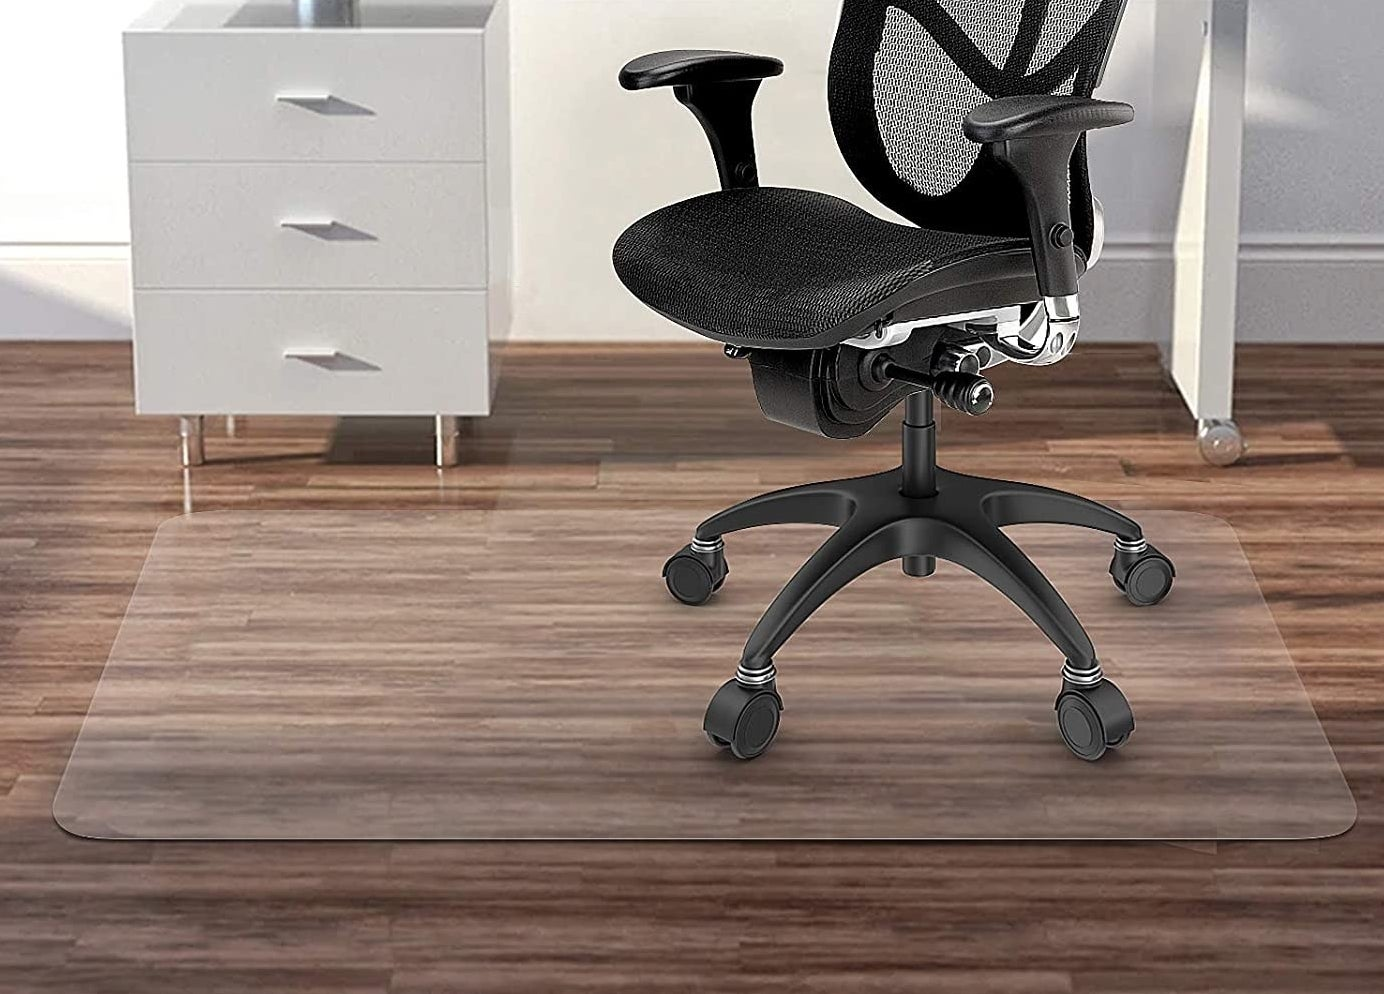 The clear mat in a home office with a rolling office chair on top